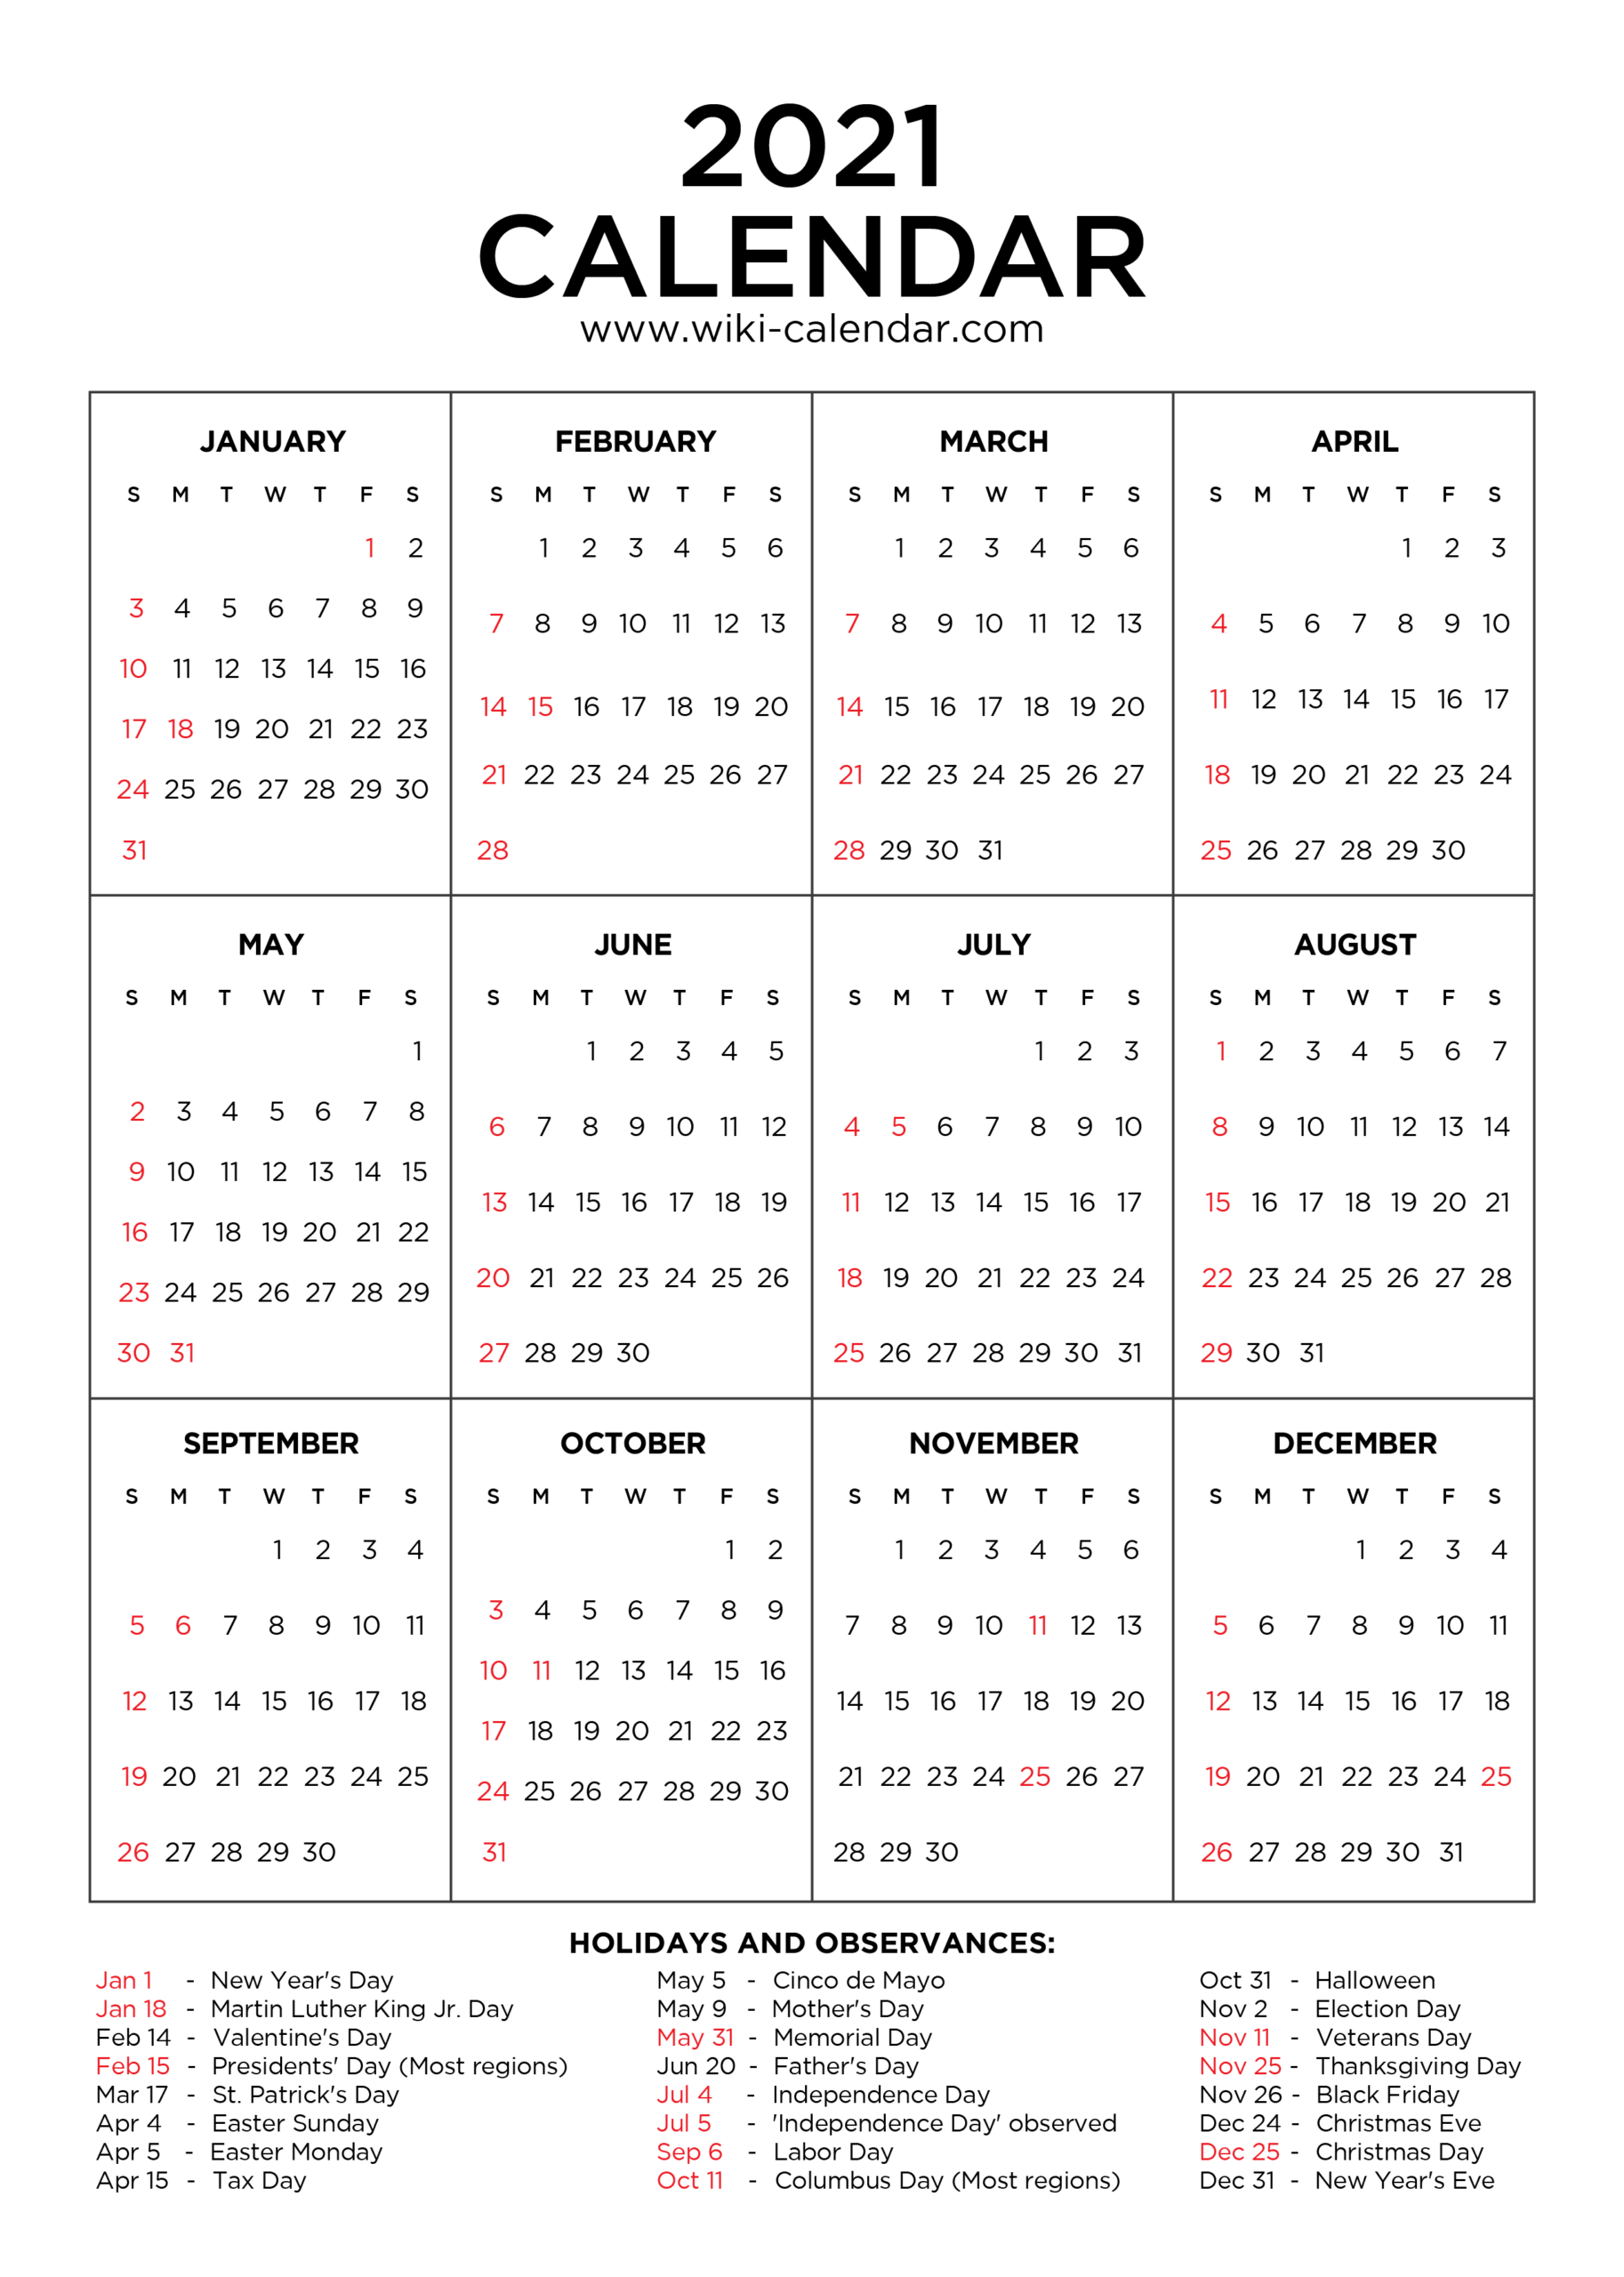 Free Printable Year 2021 Calendar With Holidays for Print Free 2021 Calendar Without Downloading